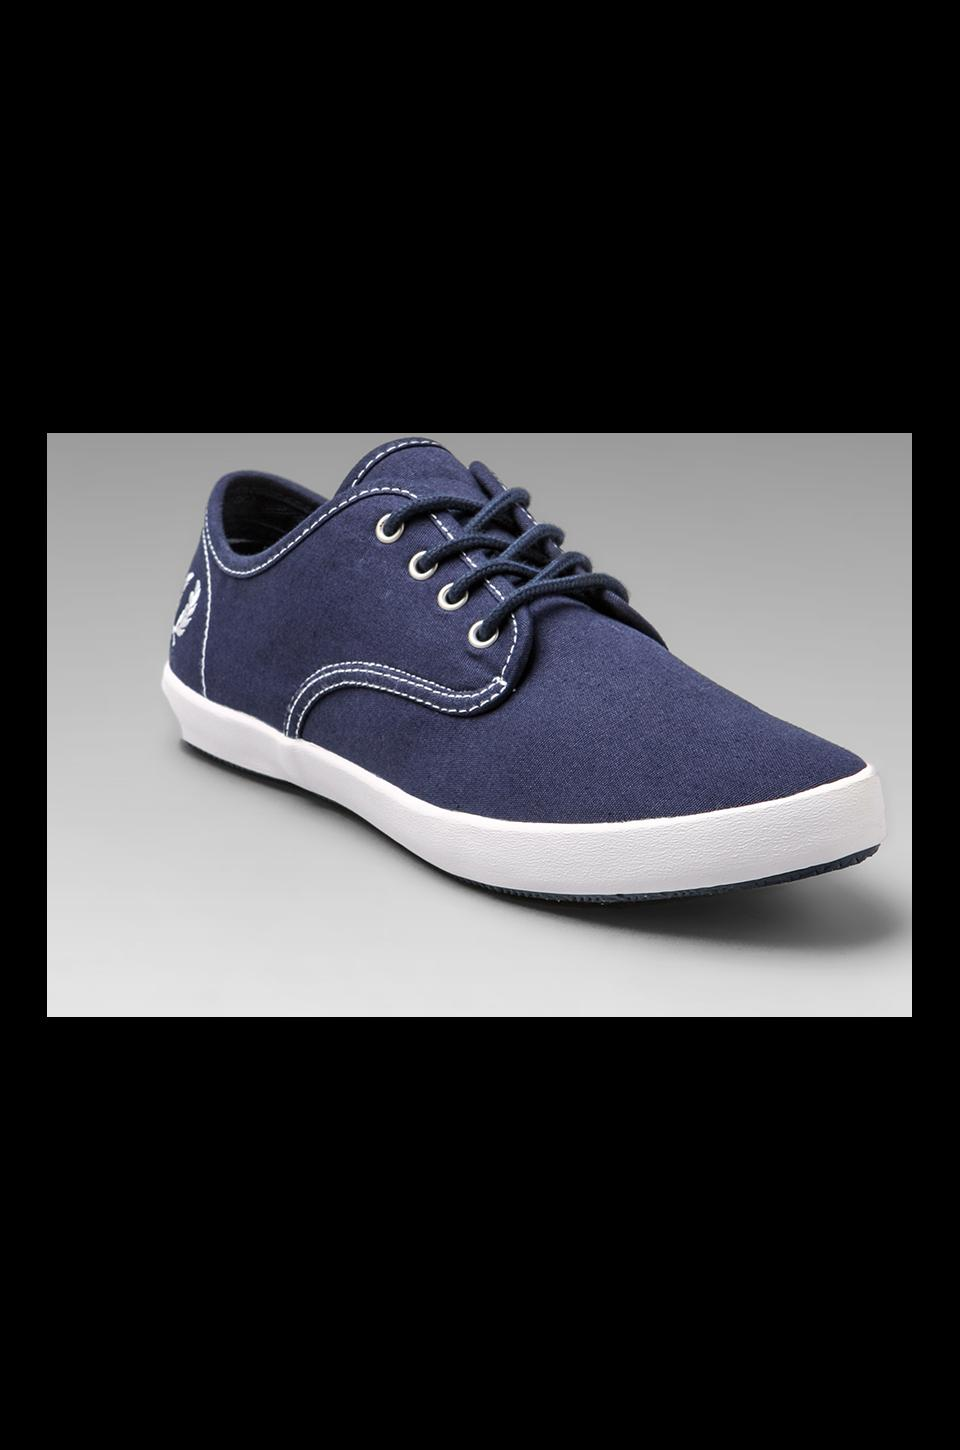 Fred Perry FOXX Canvas in Carbon Blue/White